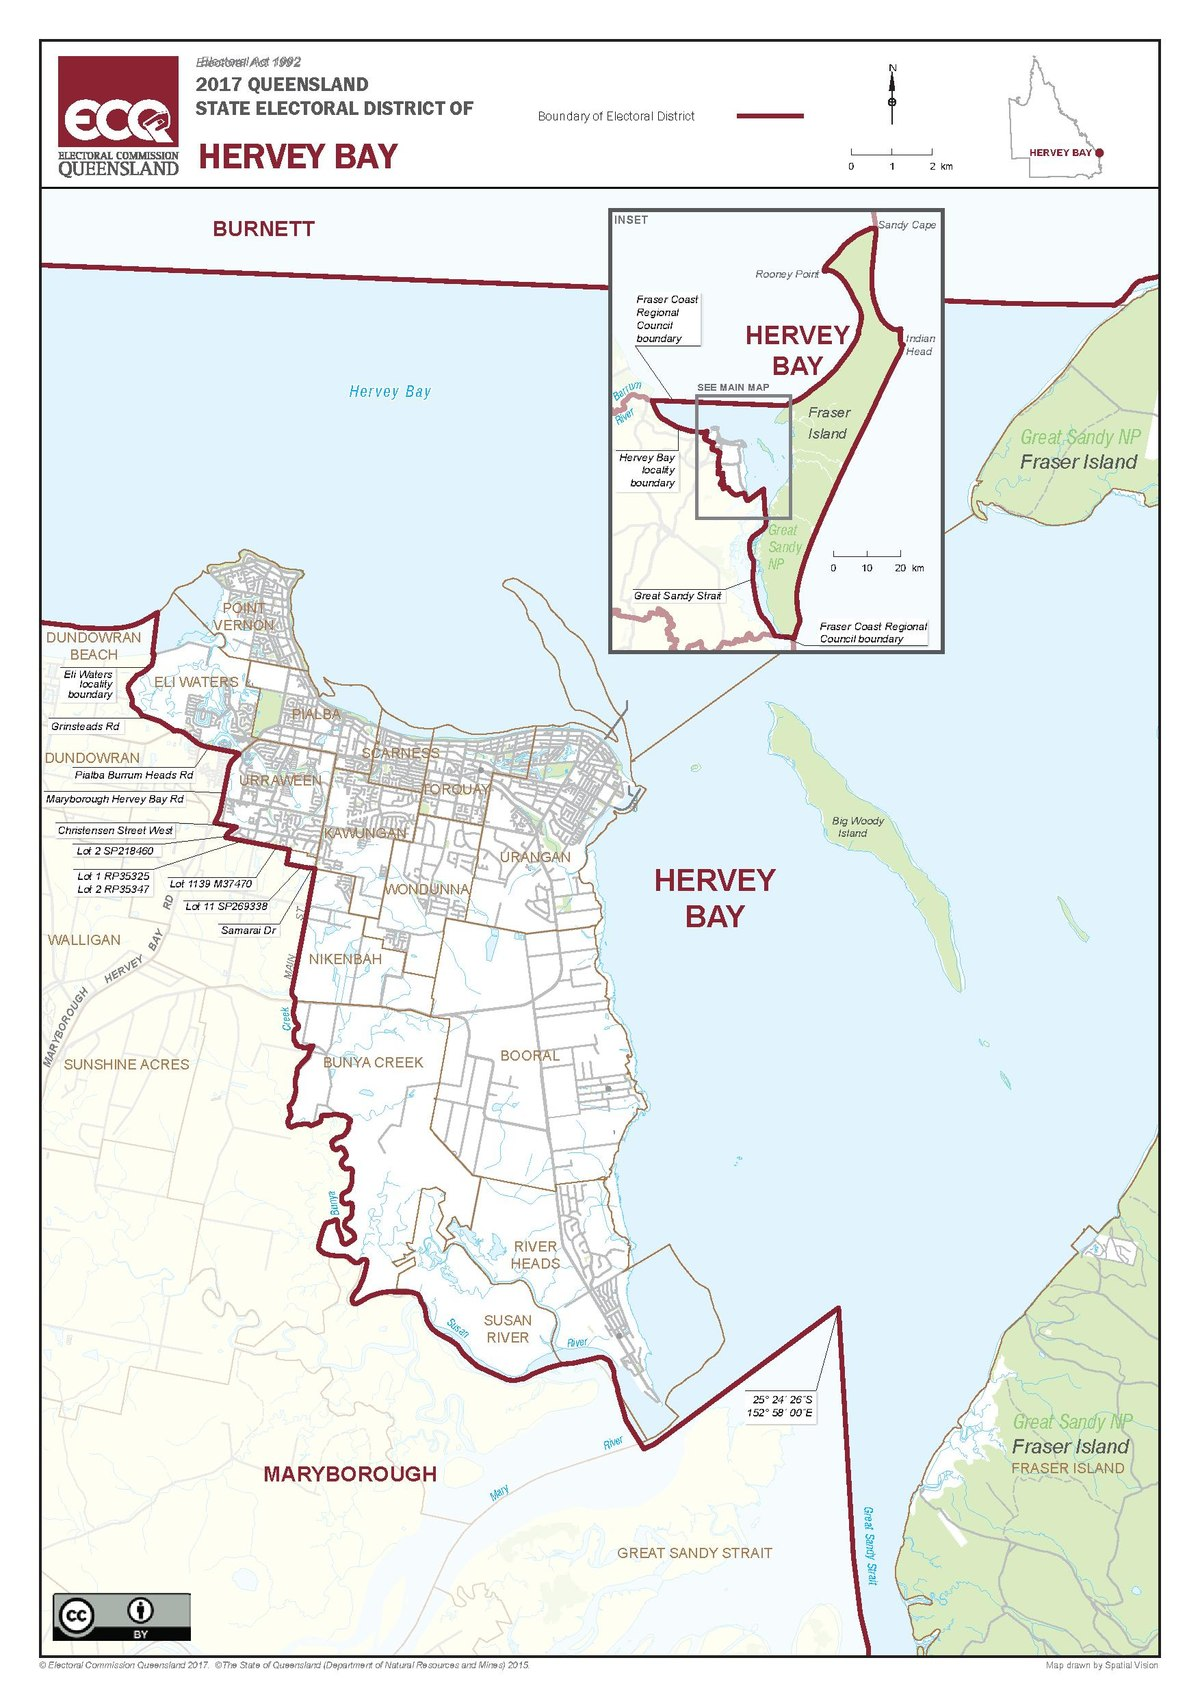 Electoral District Of Hervey Bay Wikipedia Hervey bay is home to many retired people. electoral district of hervey bay